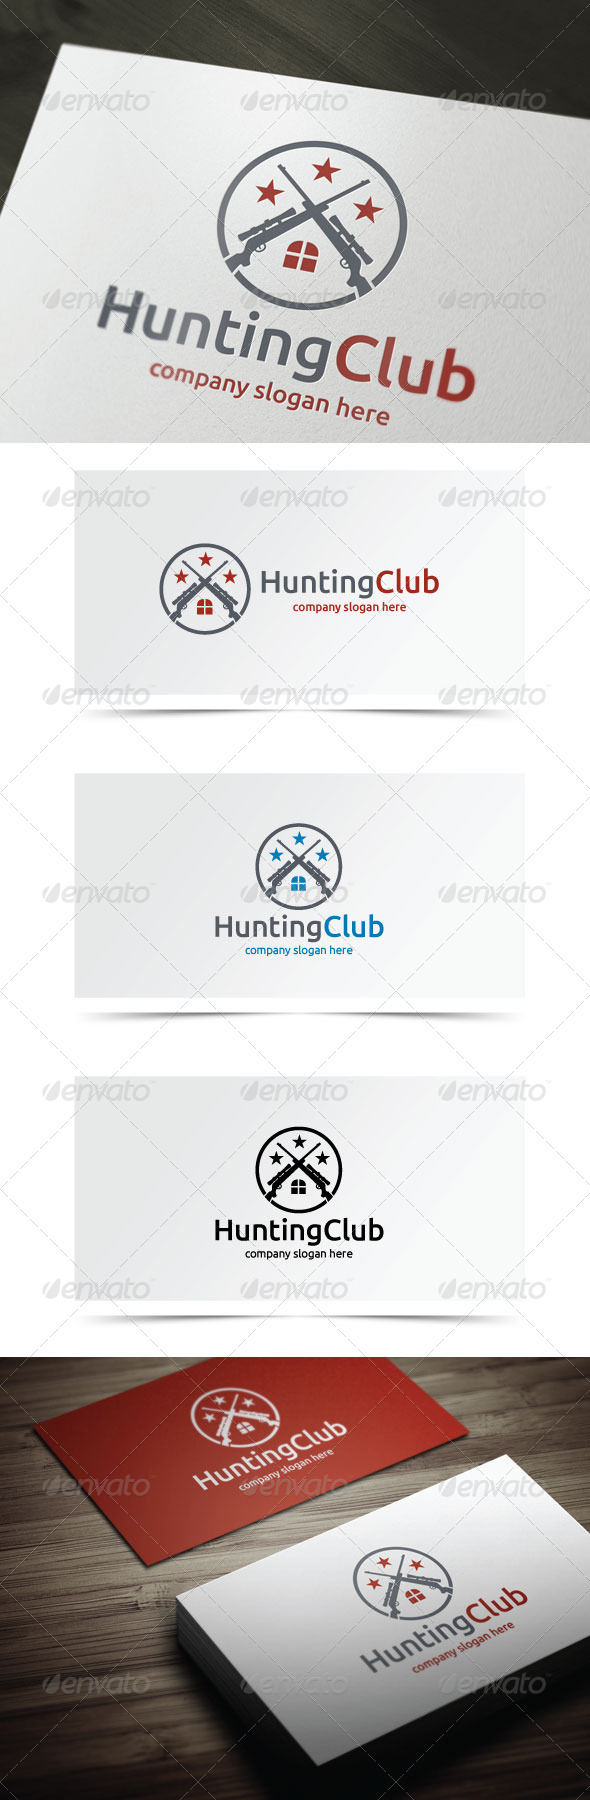 GraphicRiver Hunting Club 8049599